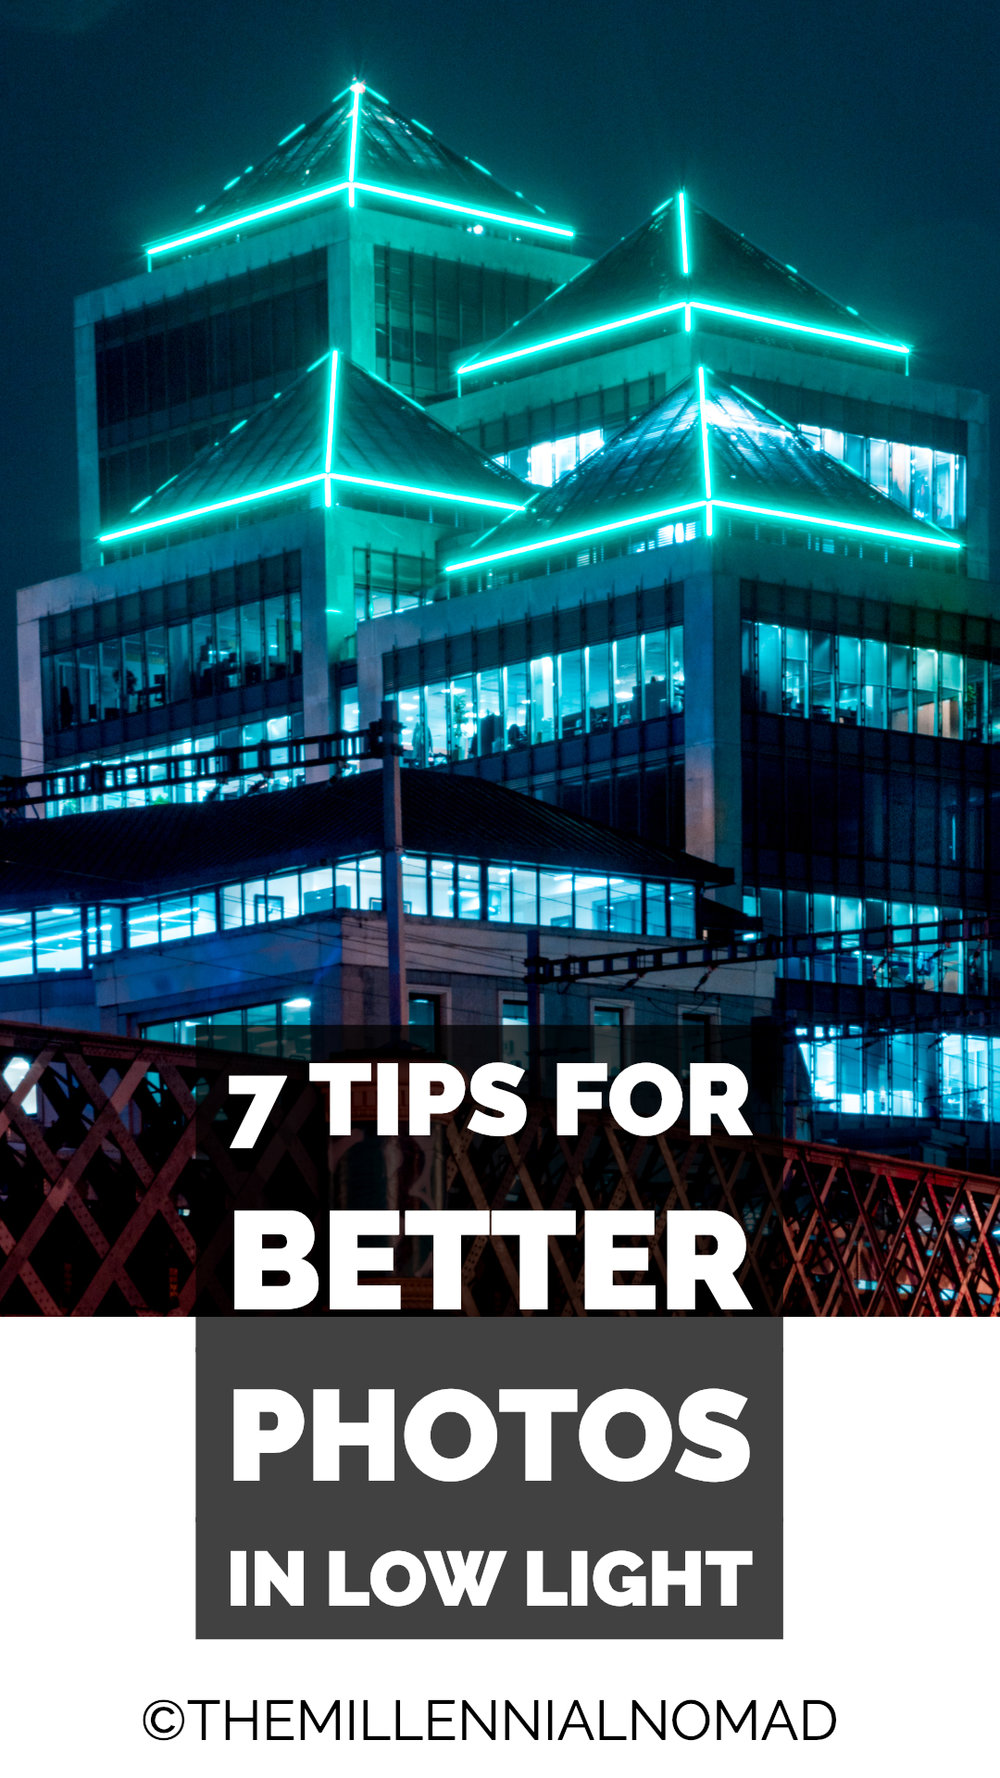 Today, shooting photos at night is one of my favourite things to do. I am far from being a professional and having incredible results, but I improved my skills by practicing as much as I could and in this article I will share with you 7 tips to take better photos in low light conditions.